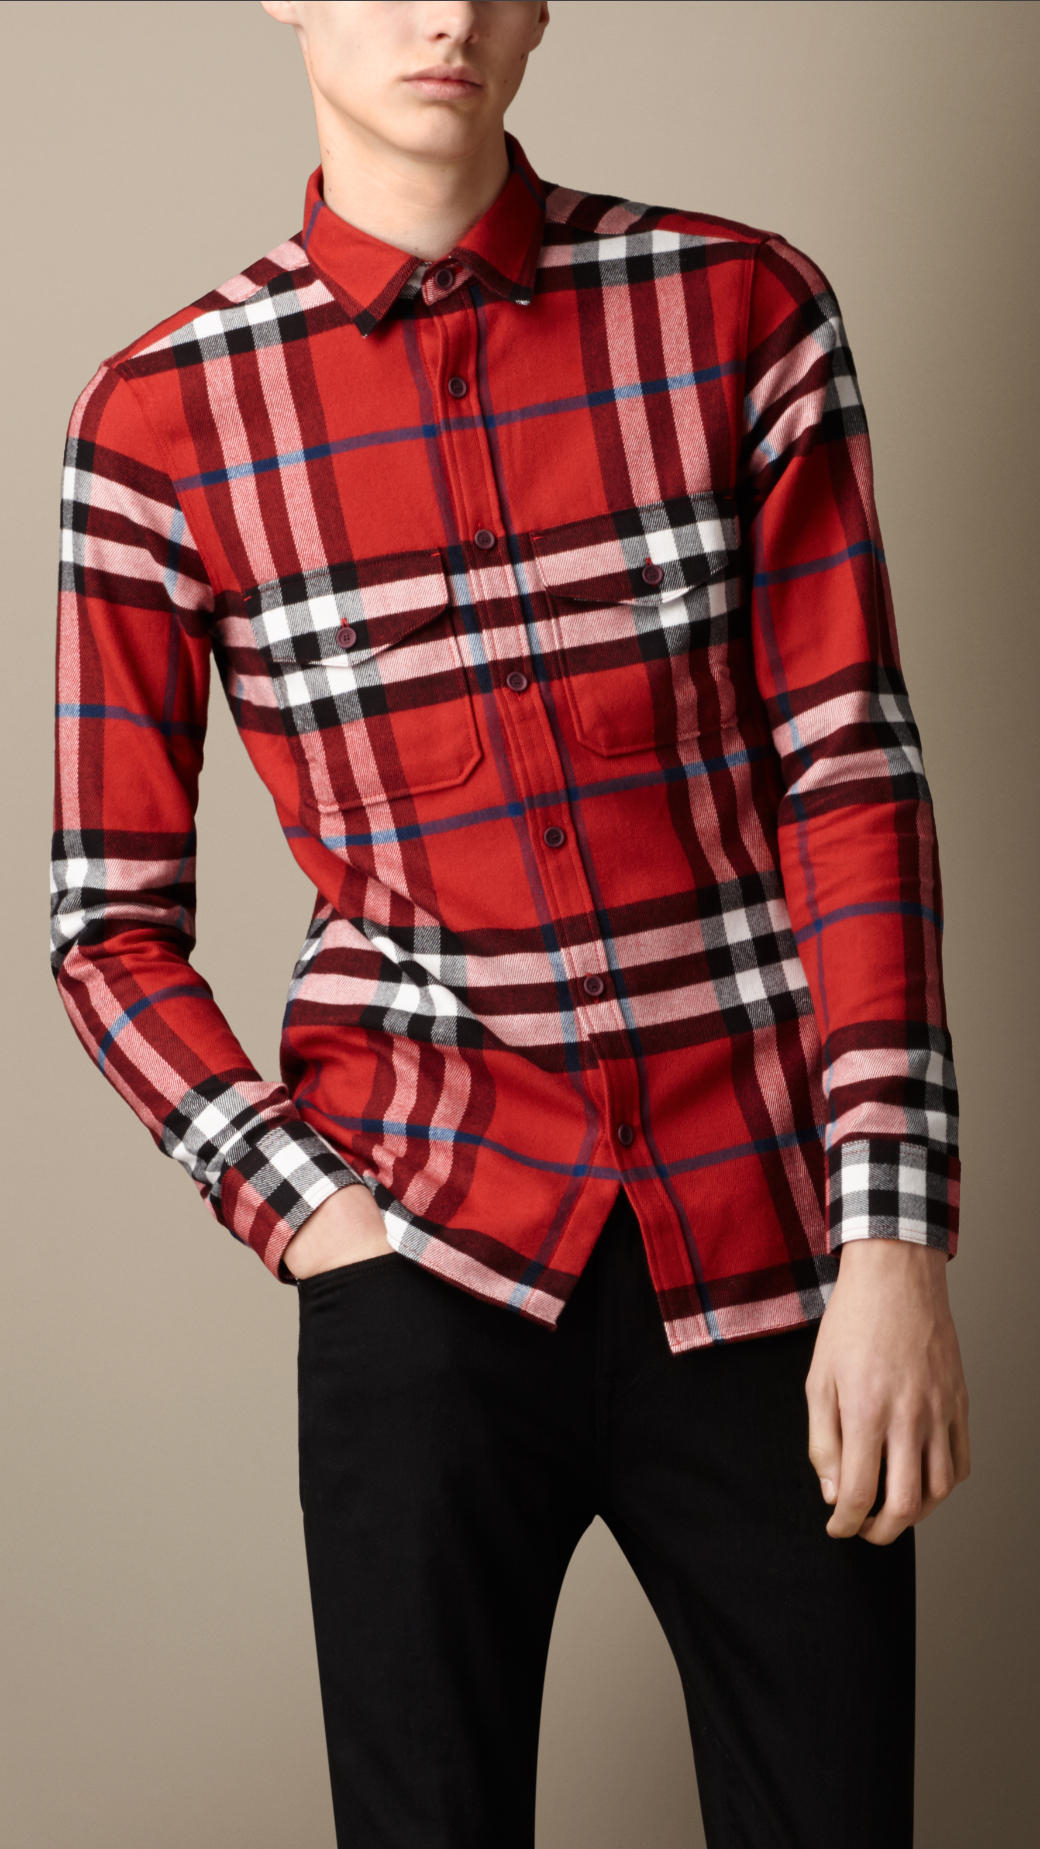 Burberry Mens Dress Shirts